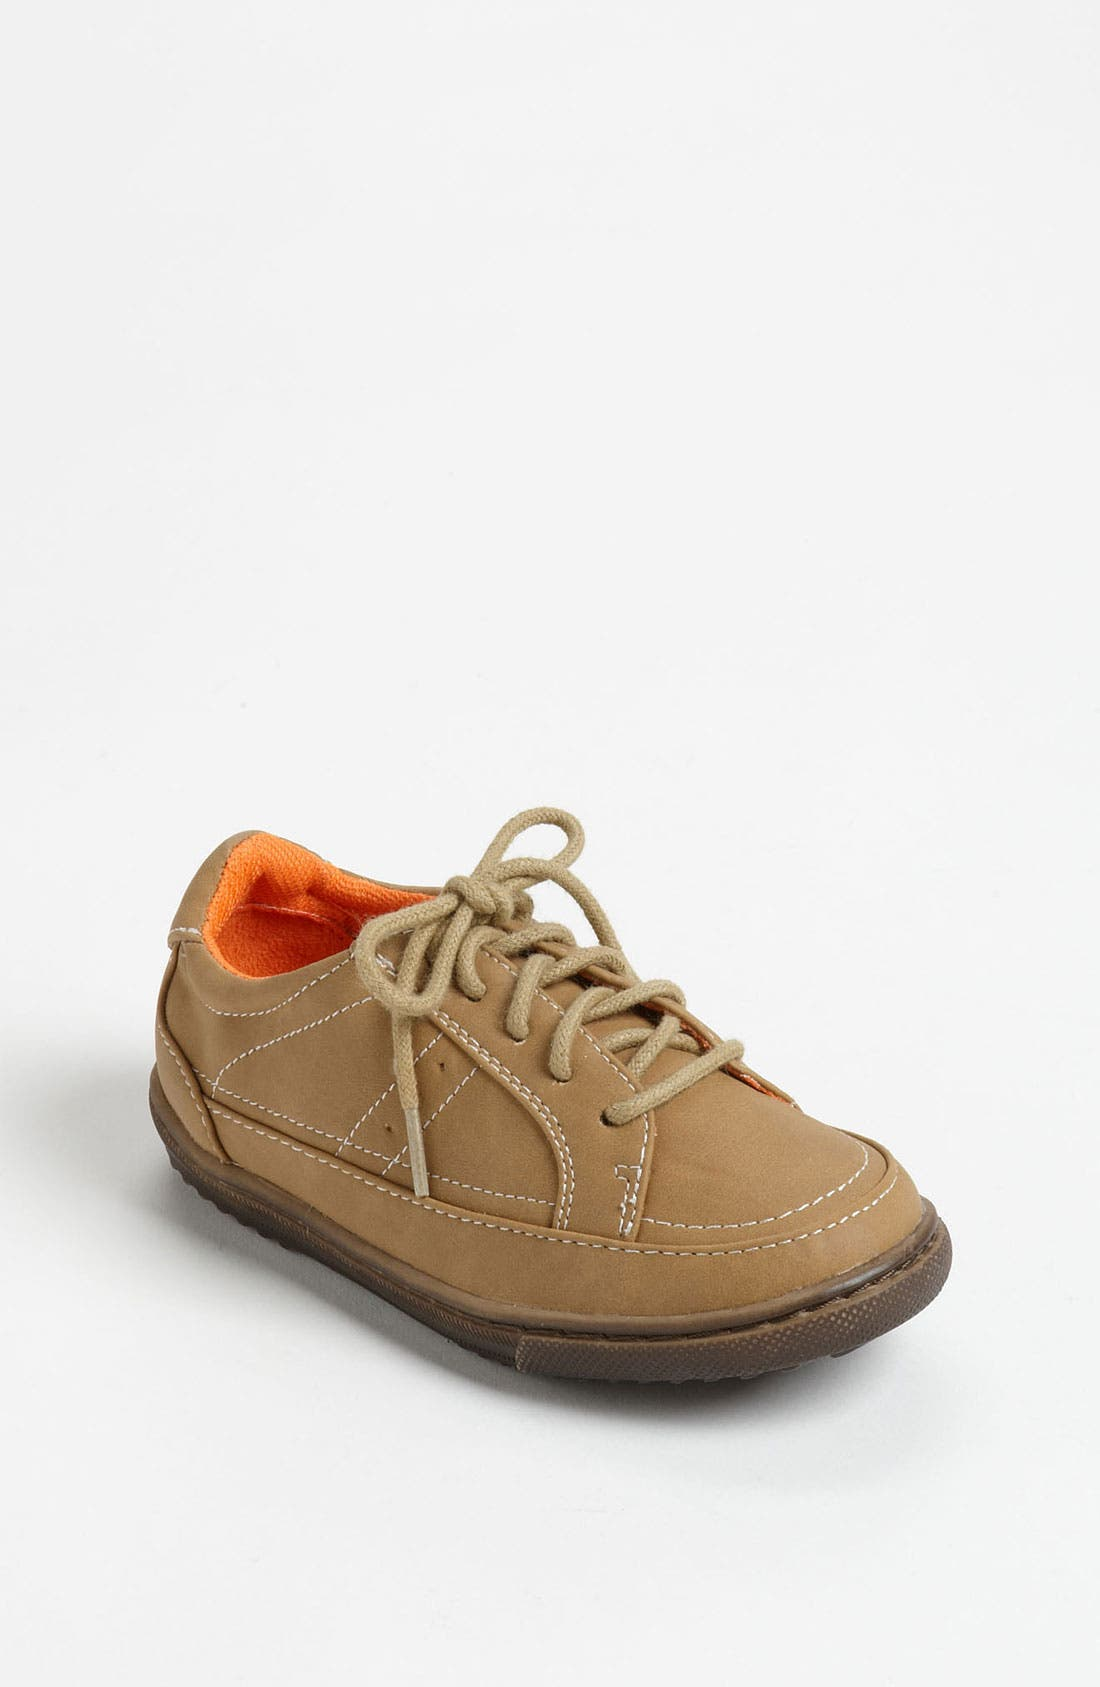 Main Image - Cole Haan 'Anthony Sport' Sneaker (Toddler, Little Kid & Big Kid)